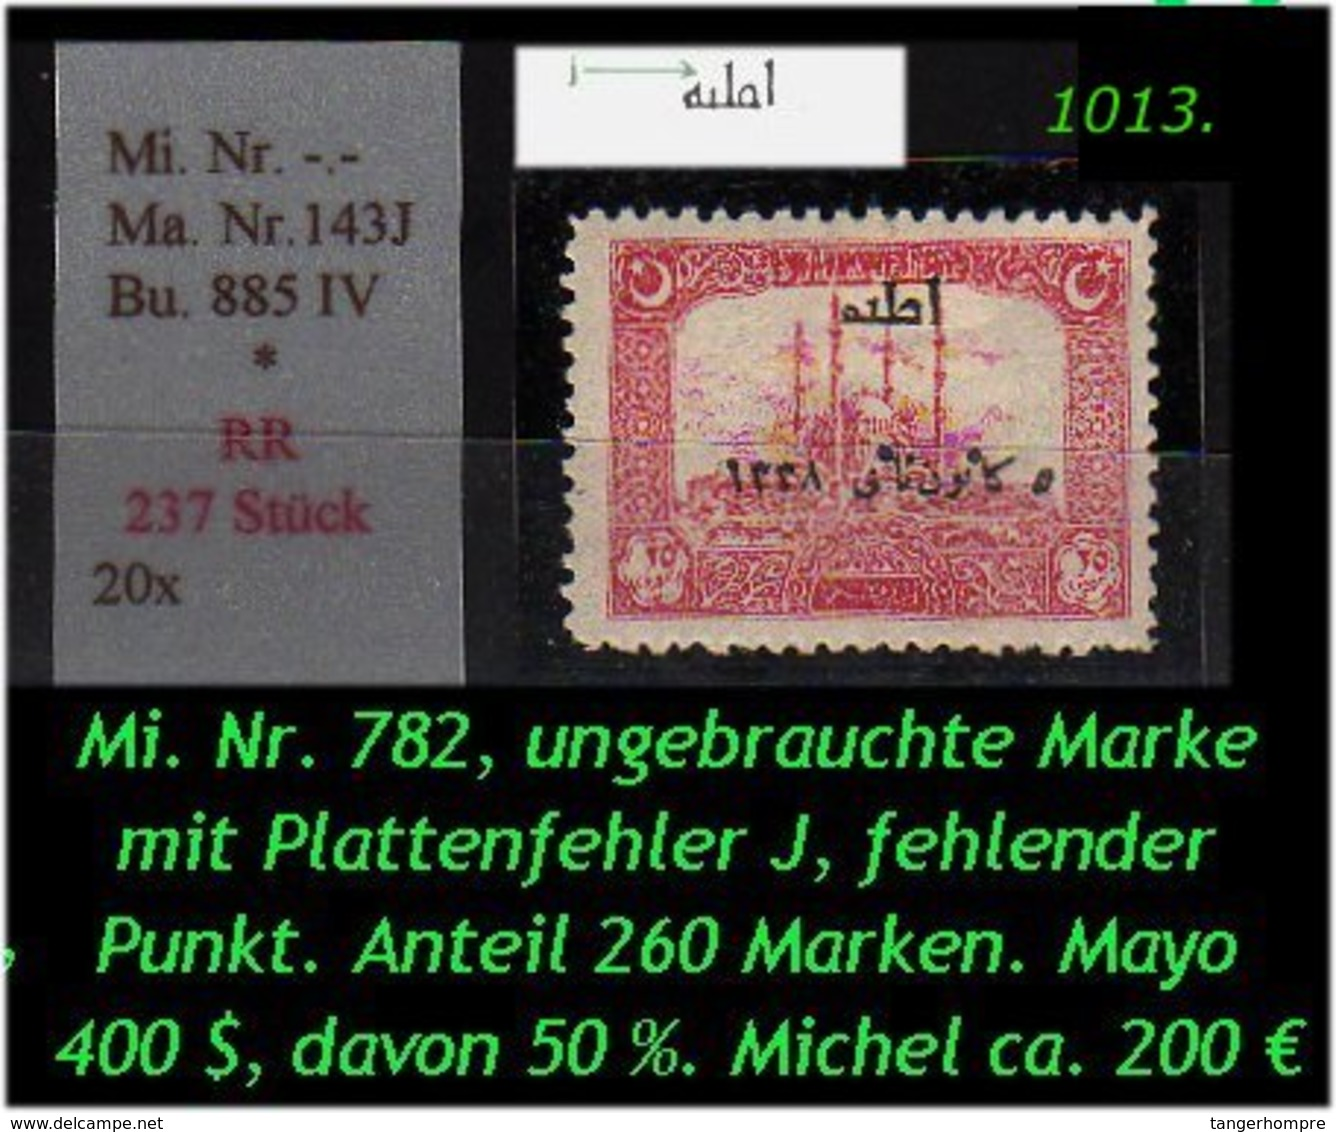 EARLY OTTOMAN SPECIALIZED FOR SPECIALIST, SEE...Mi. Nr. 782 Mit Plattenfehler - Mayo 143 J - Nuevos